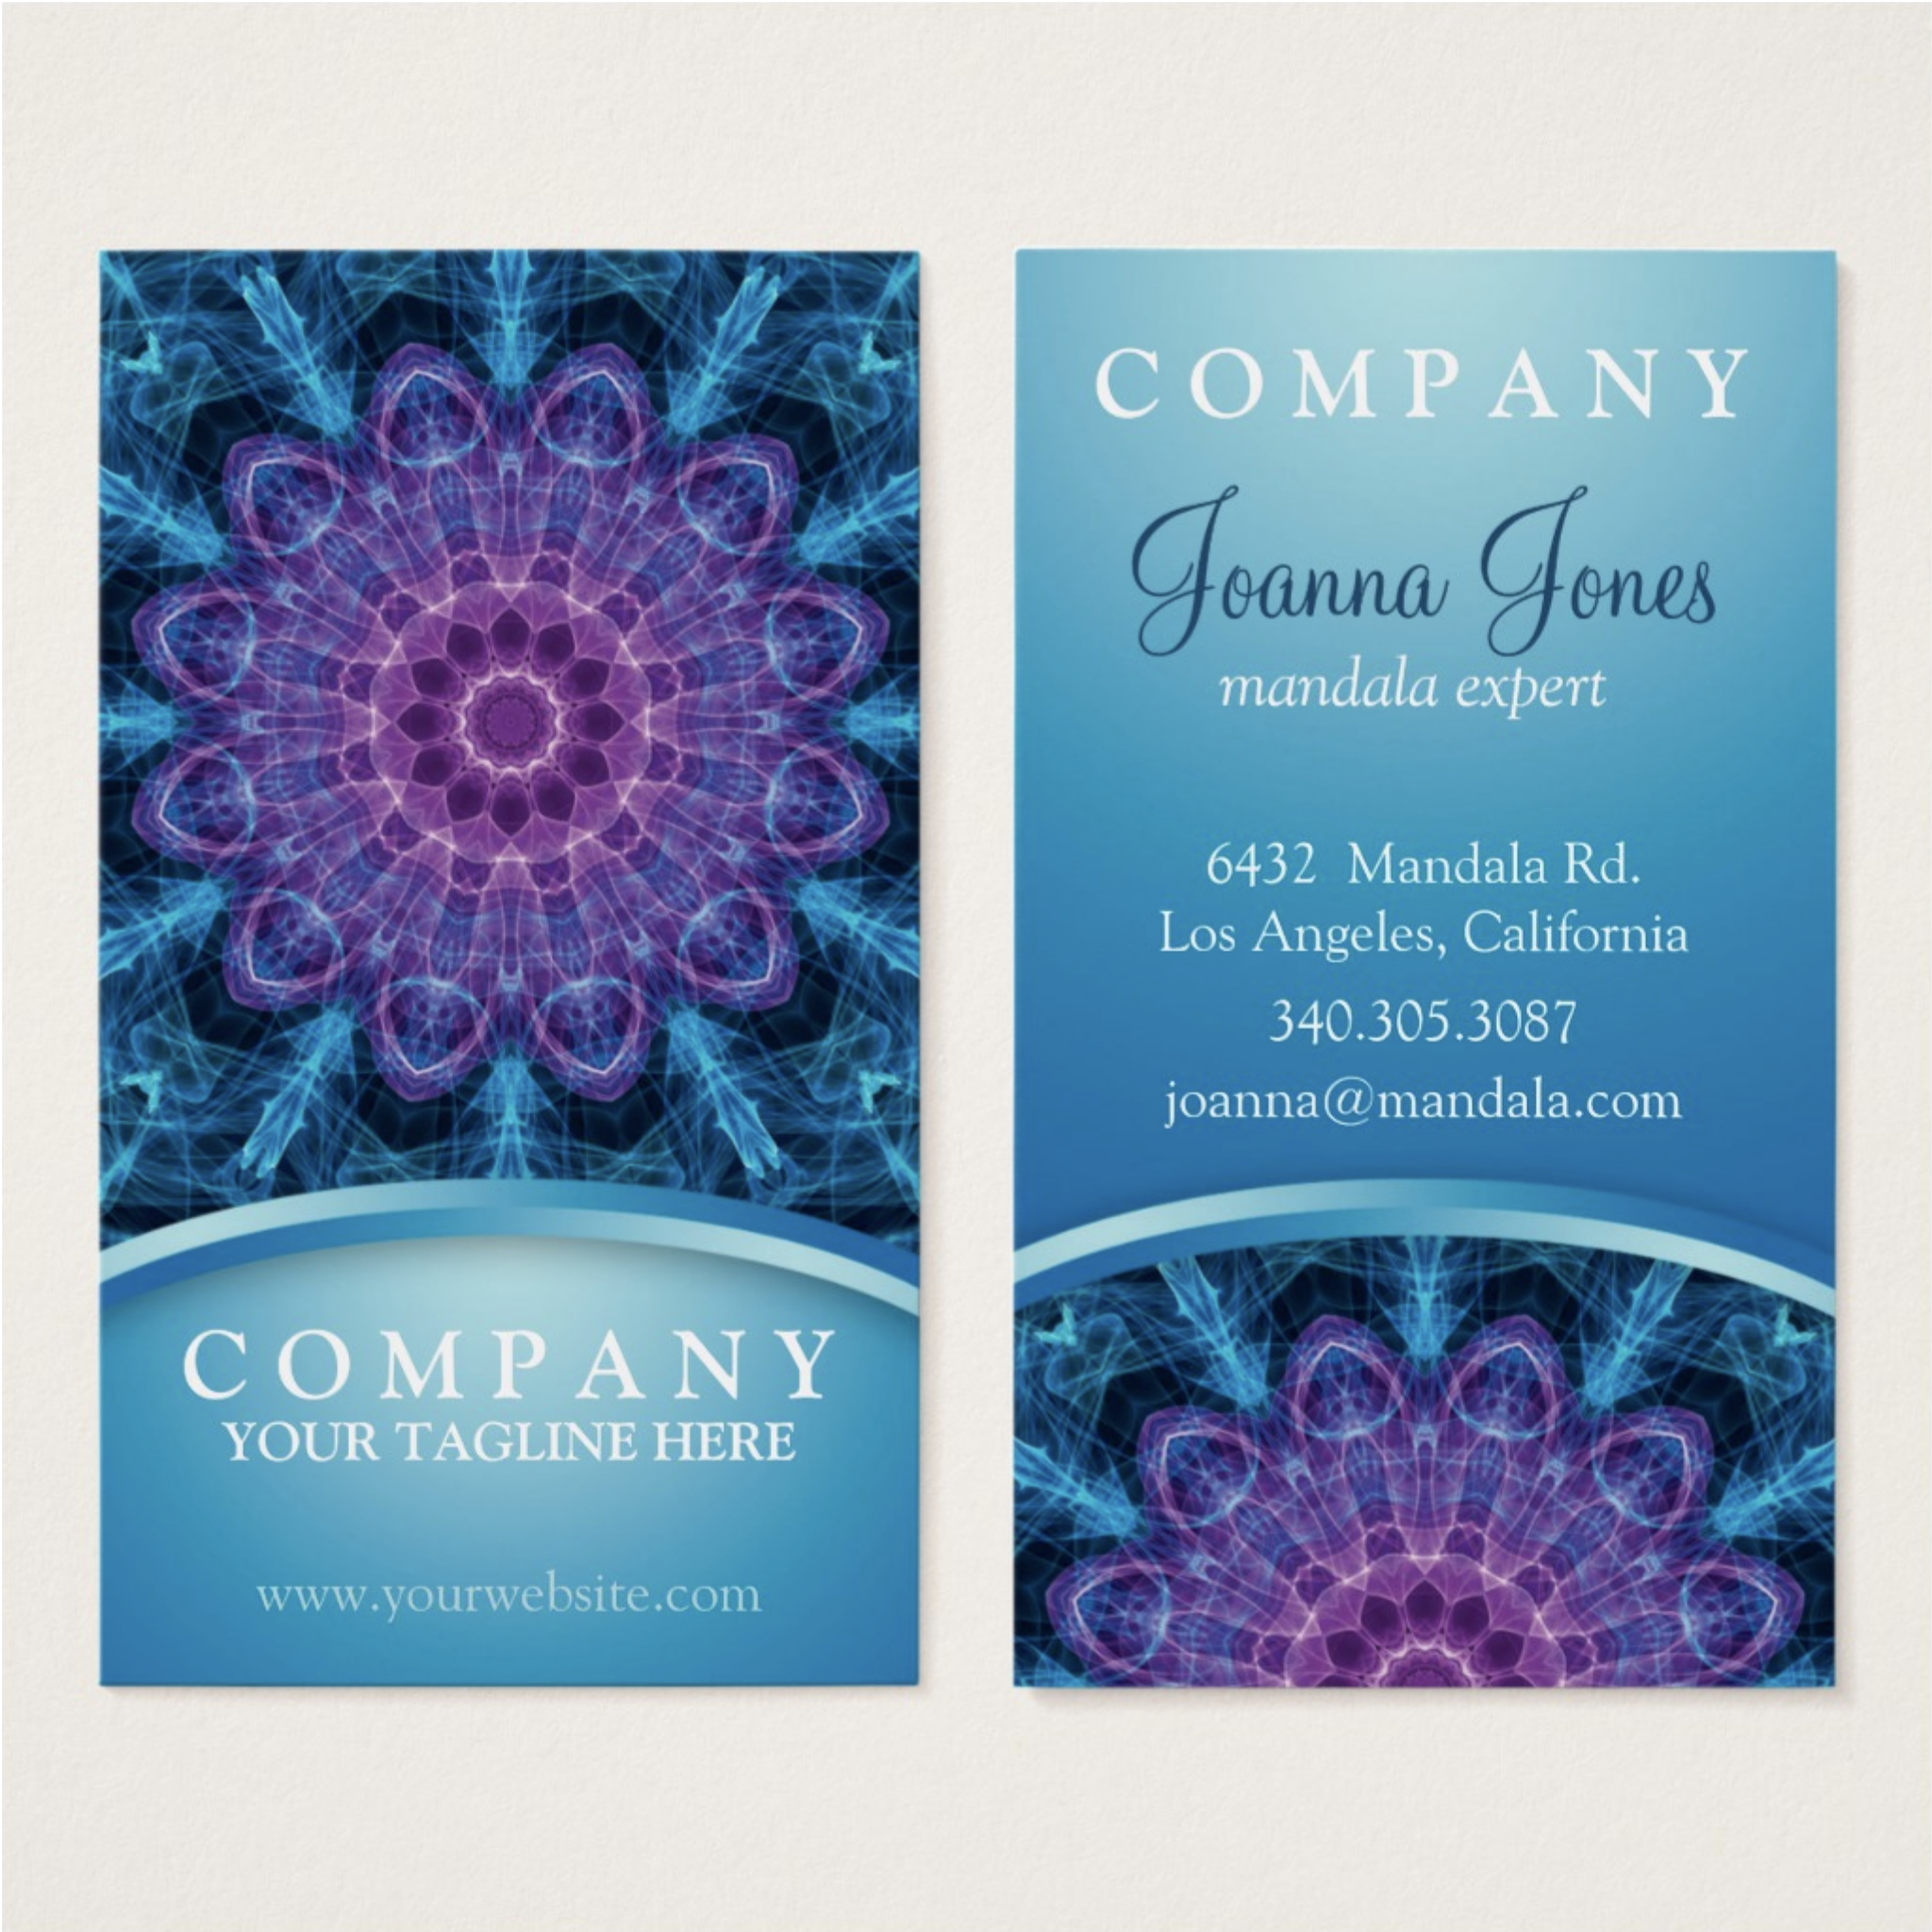 Spiritual flower mandala blue business cards zandiepants spiritual flower mandala blue business cards colourmoves